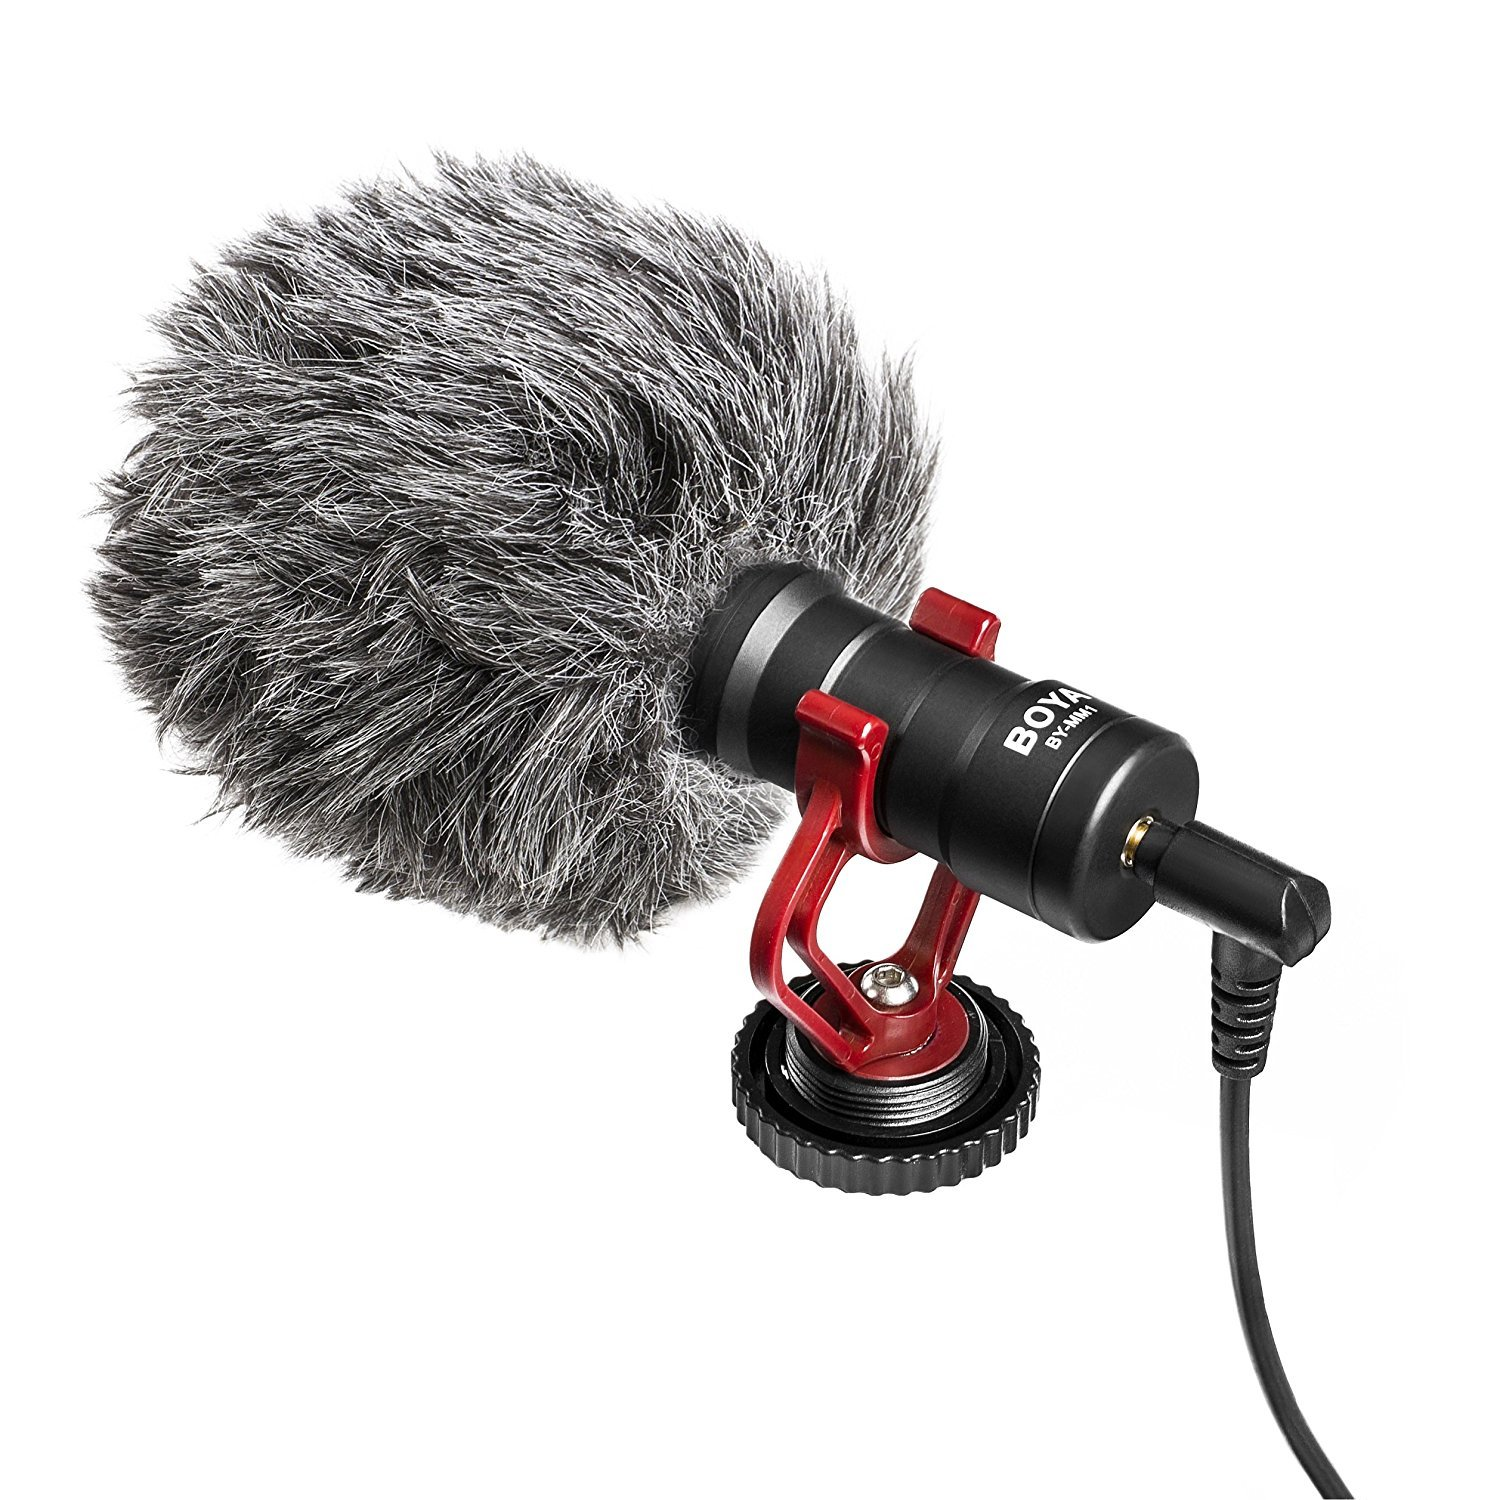 Boya Video Microphone Universal Compact on-Camera Mini Recording Mic  Directional Condenser for iPhone Android Smartphone Mac Tablet DSLR  Camcorder